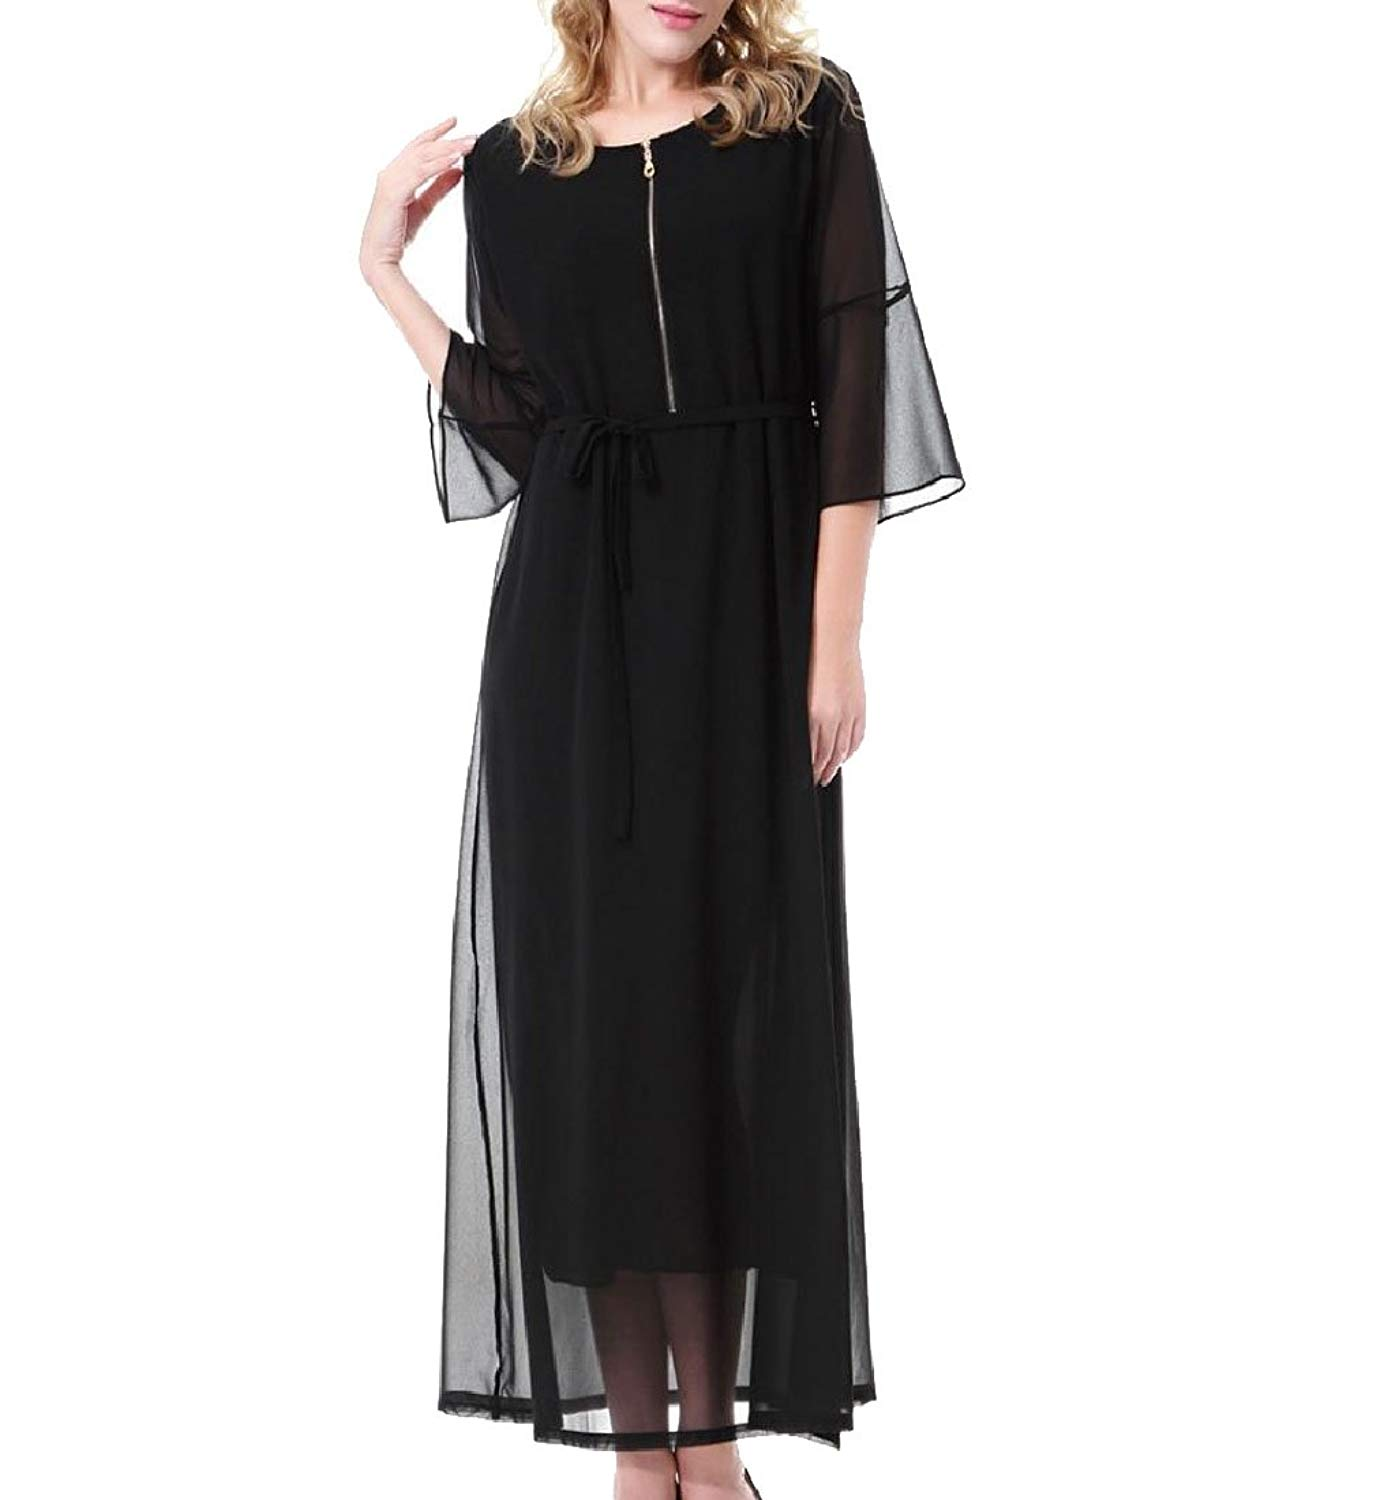 0c4add3873 Get Quotations · Buildhigh Womens Malaysia Zip Muslim Chiffon Caftan Eid Abaya  Kaftans Maxi Dress Black M